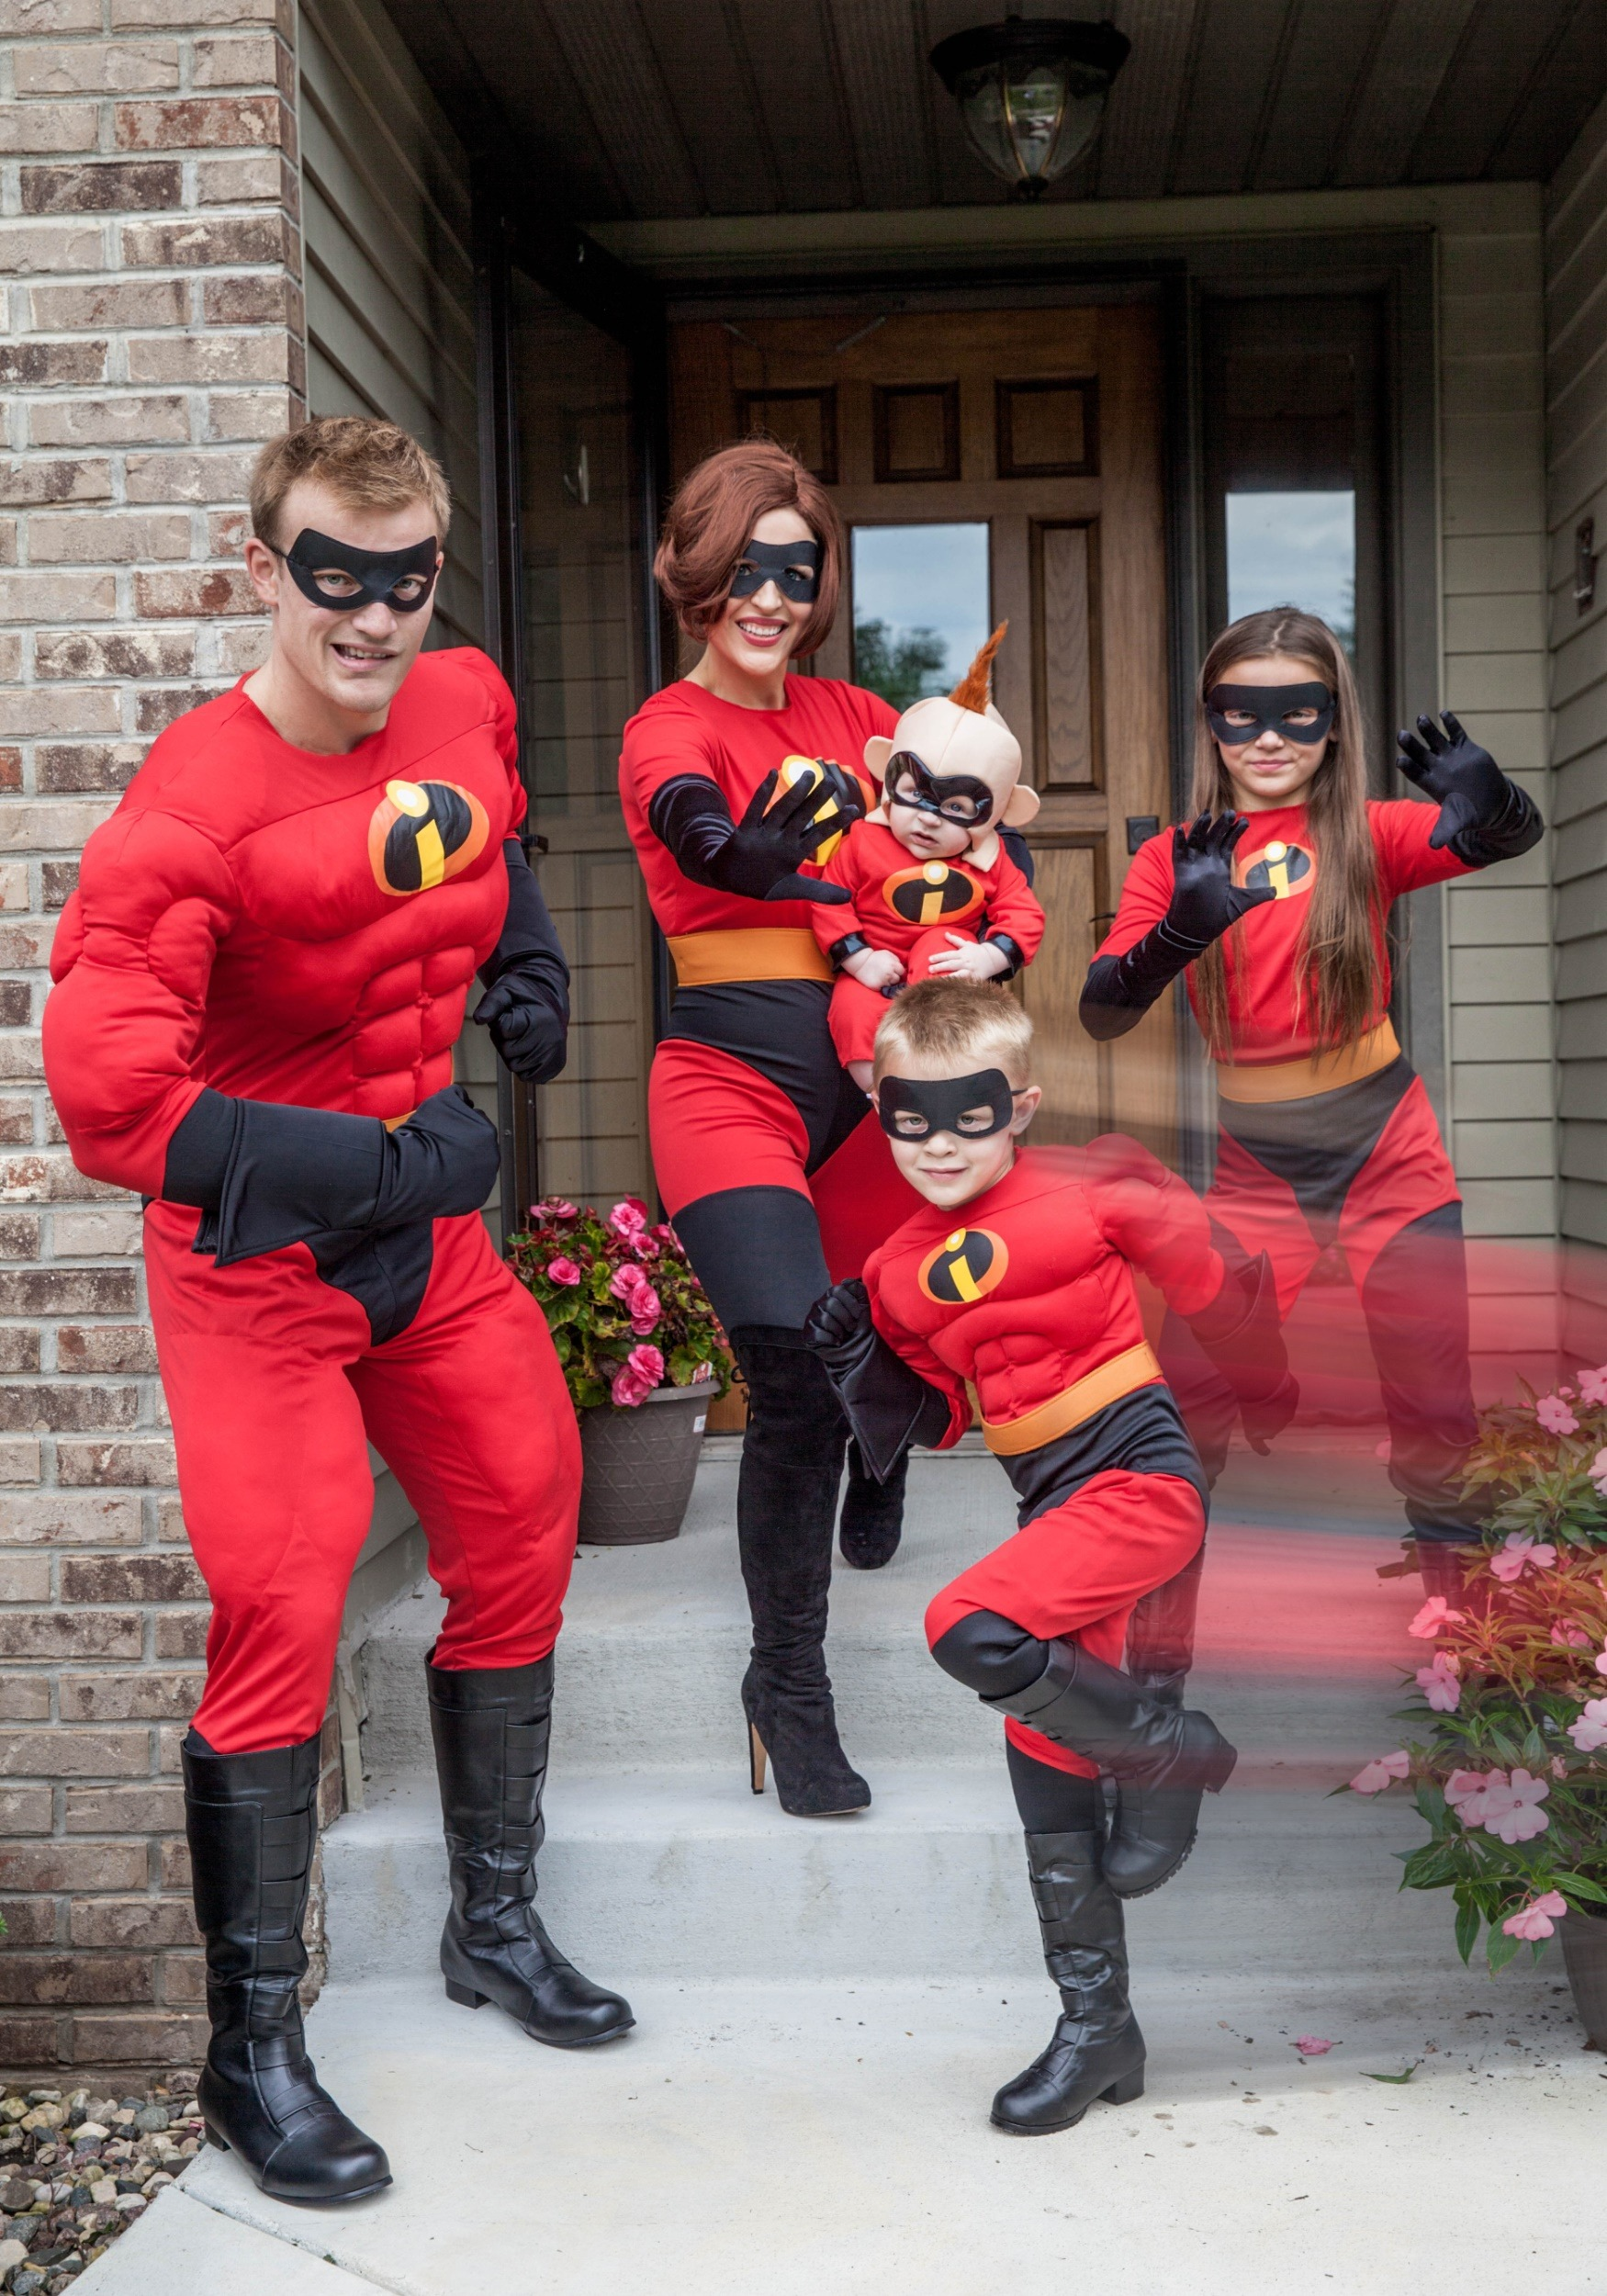 Men S Super Mr Incredible Costume From The Incredibles